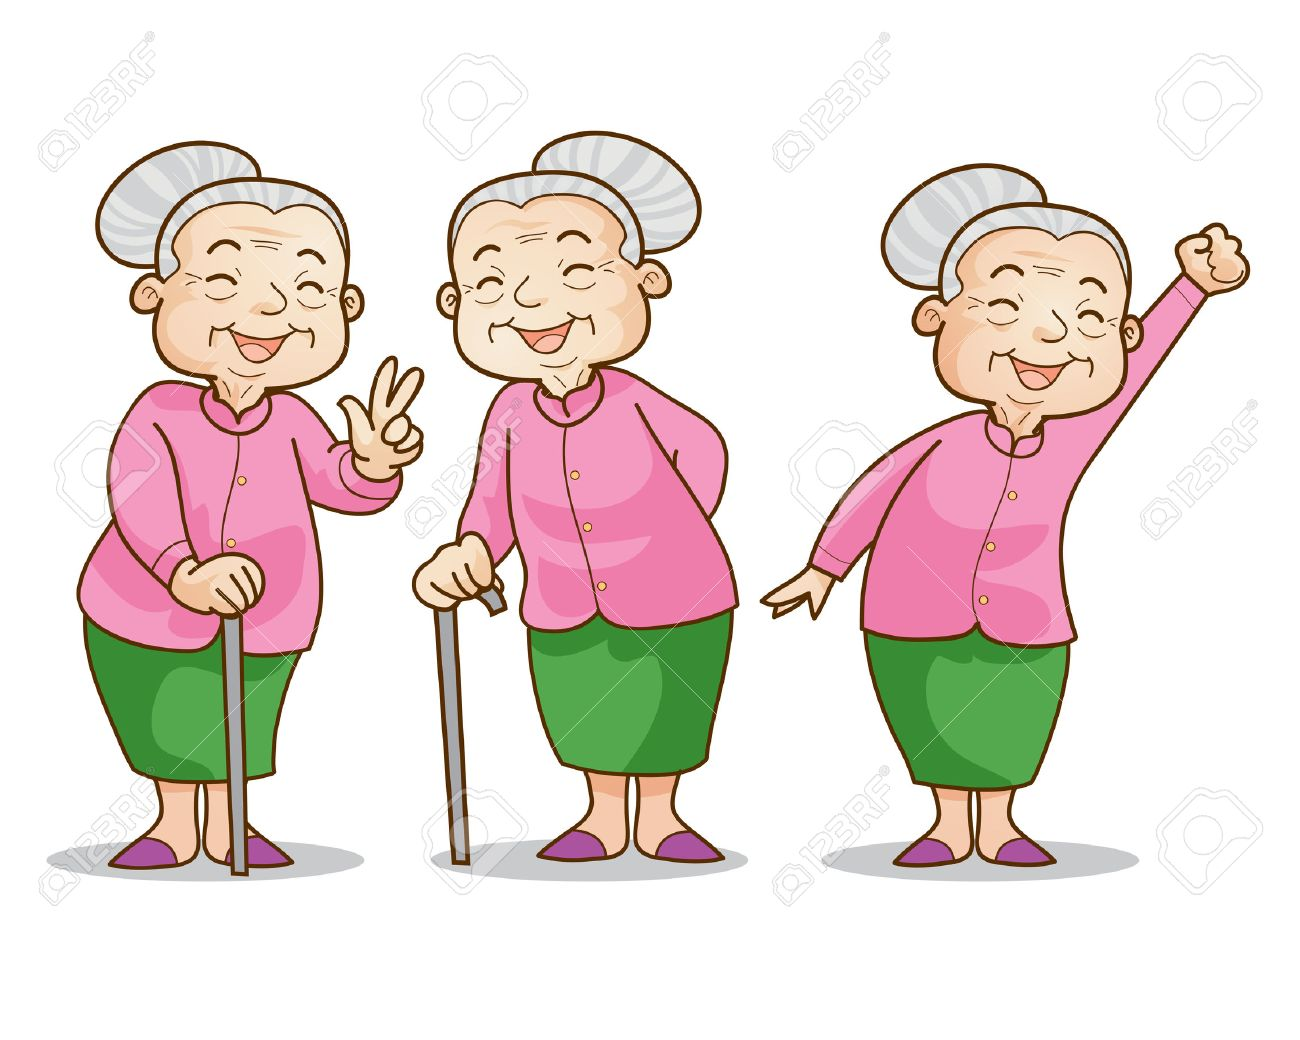 funny illustration of old woman cartoon character set isolated rh 123rf com old lady cartoon character meme old woman cartoon character